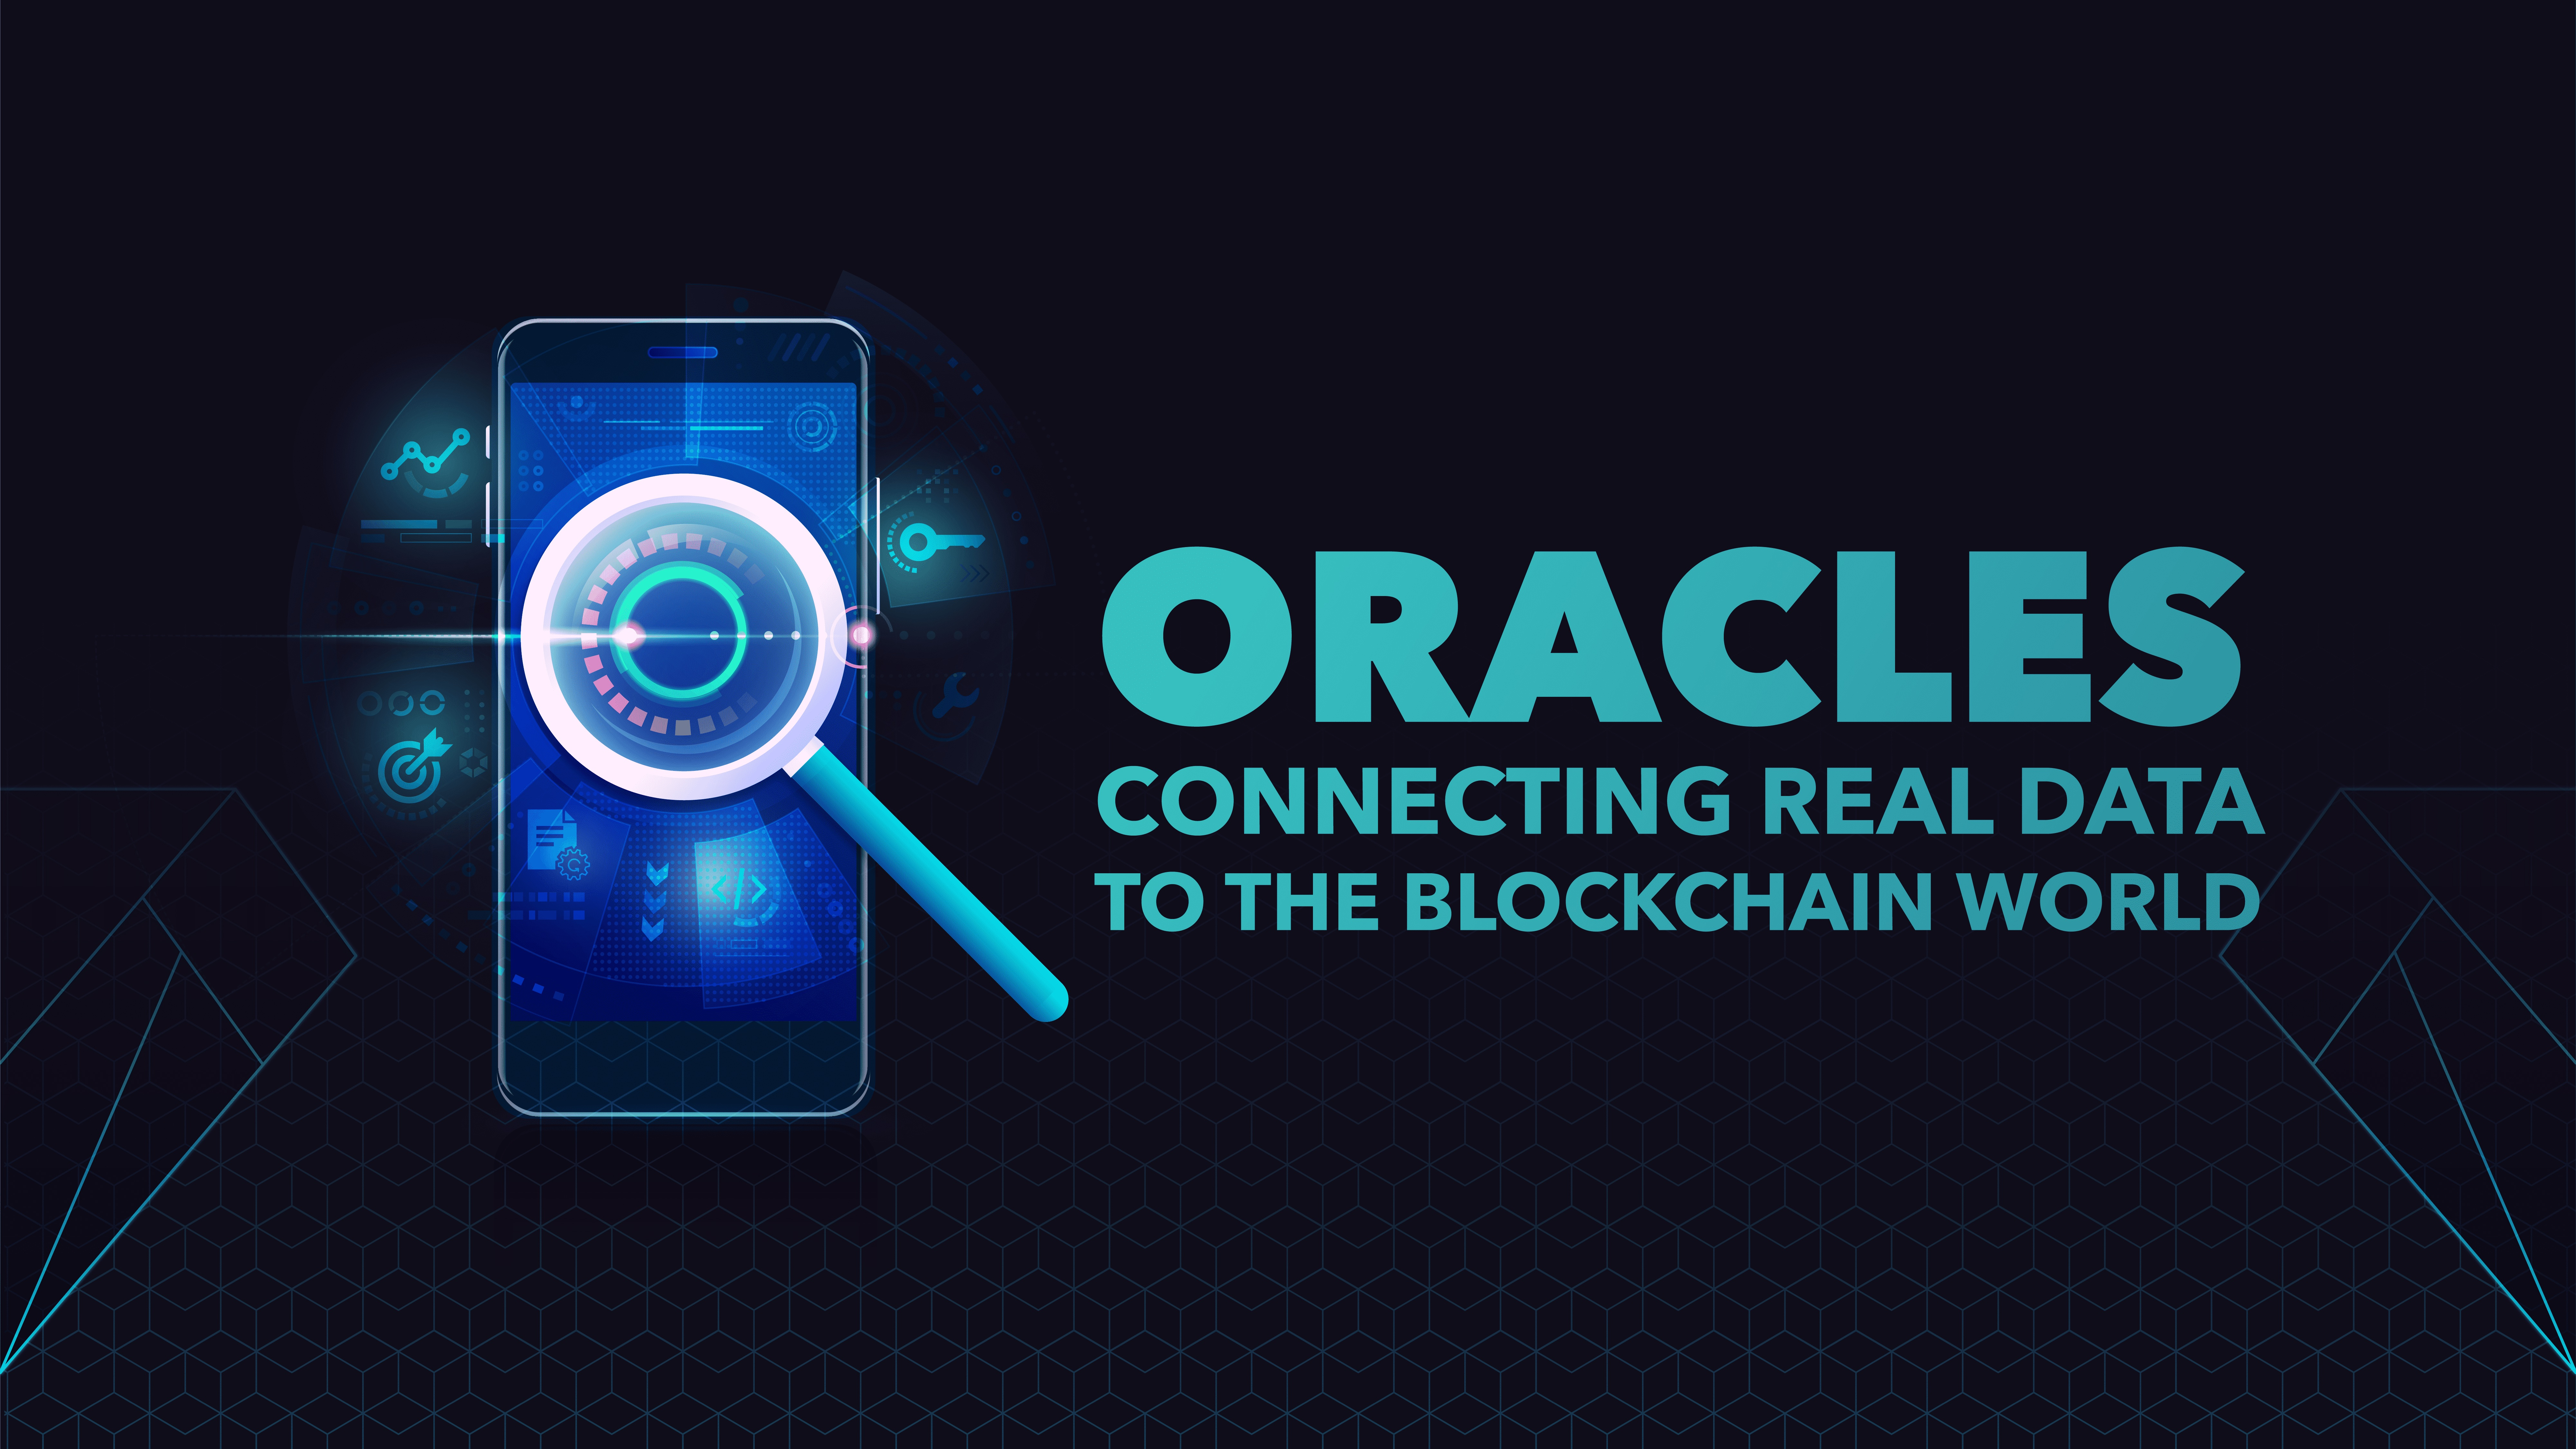 /communicating-real-world-data-with-blockchain-and-back-via-oracles-9b2s3zkq feature image